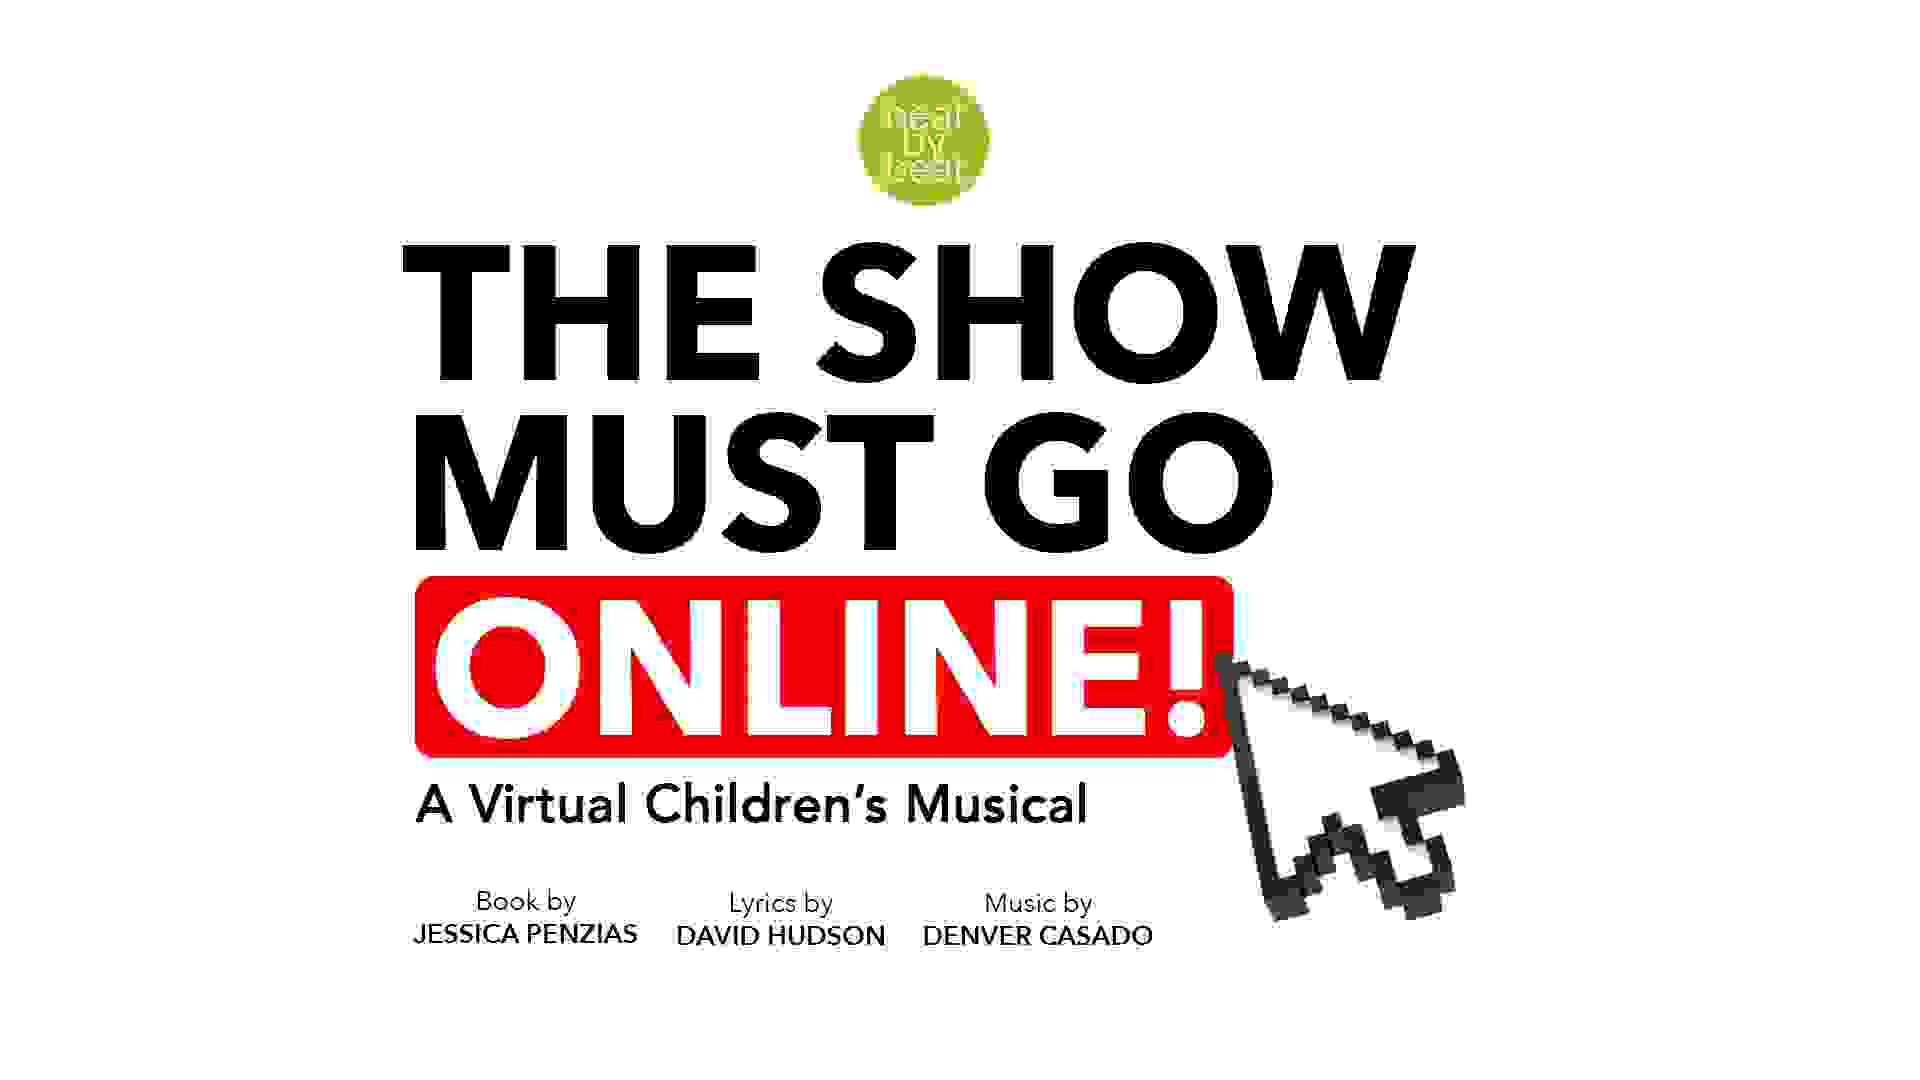 The Show Must Go Online! Virtual Children's Musical